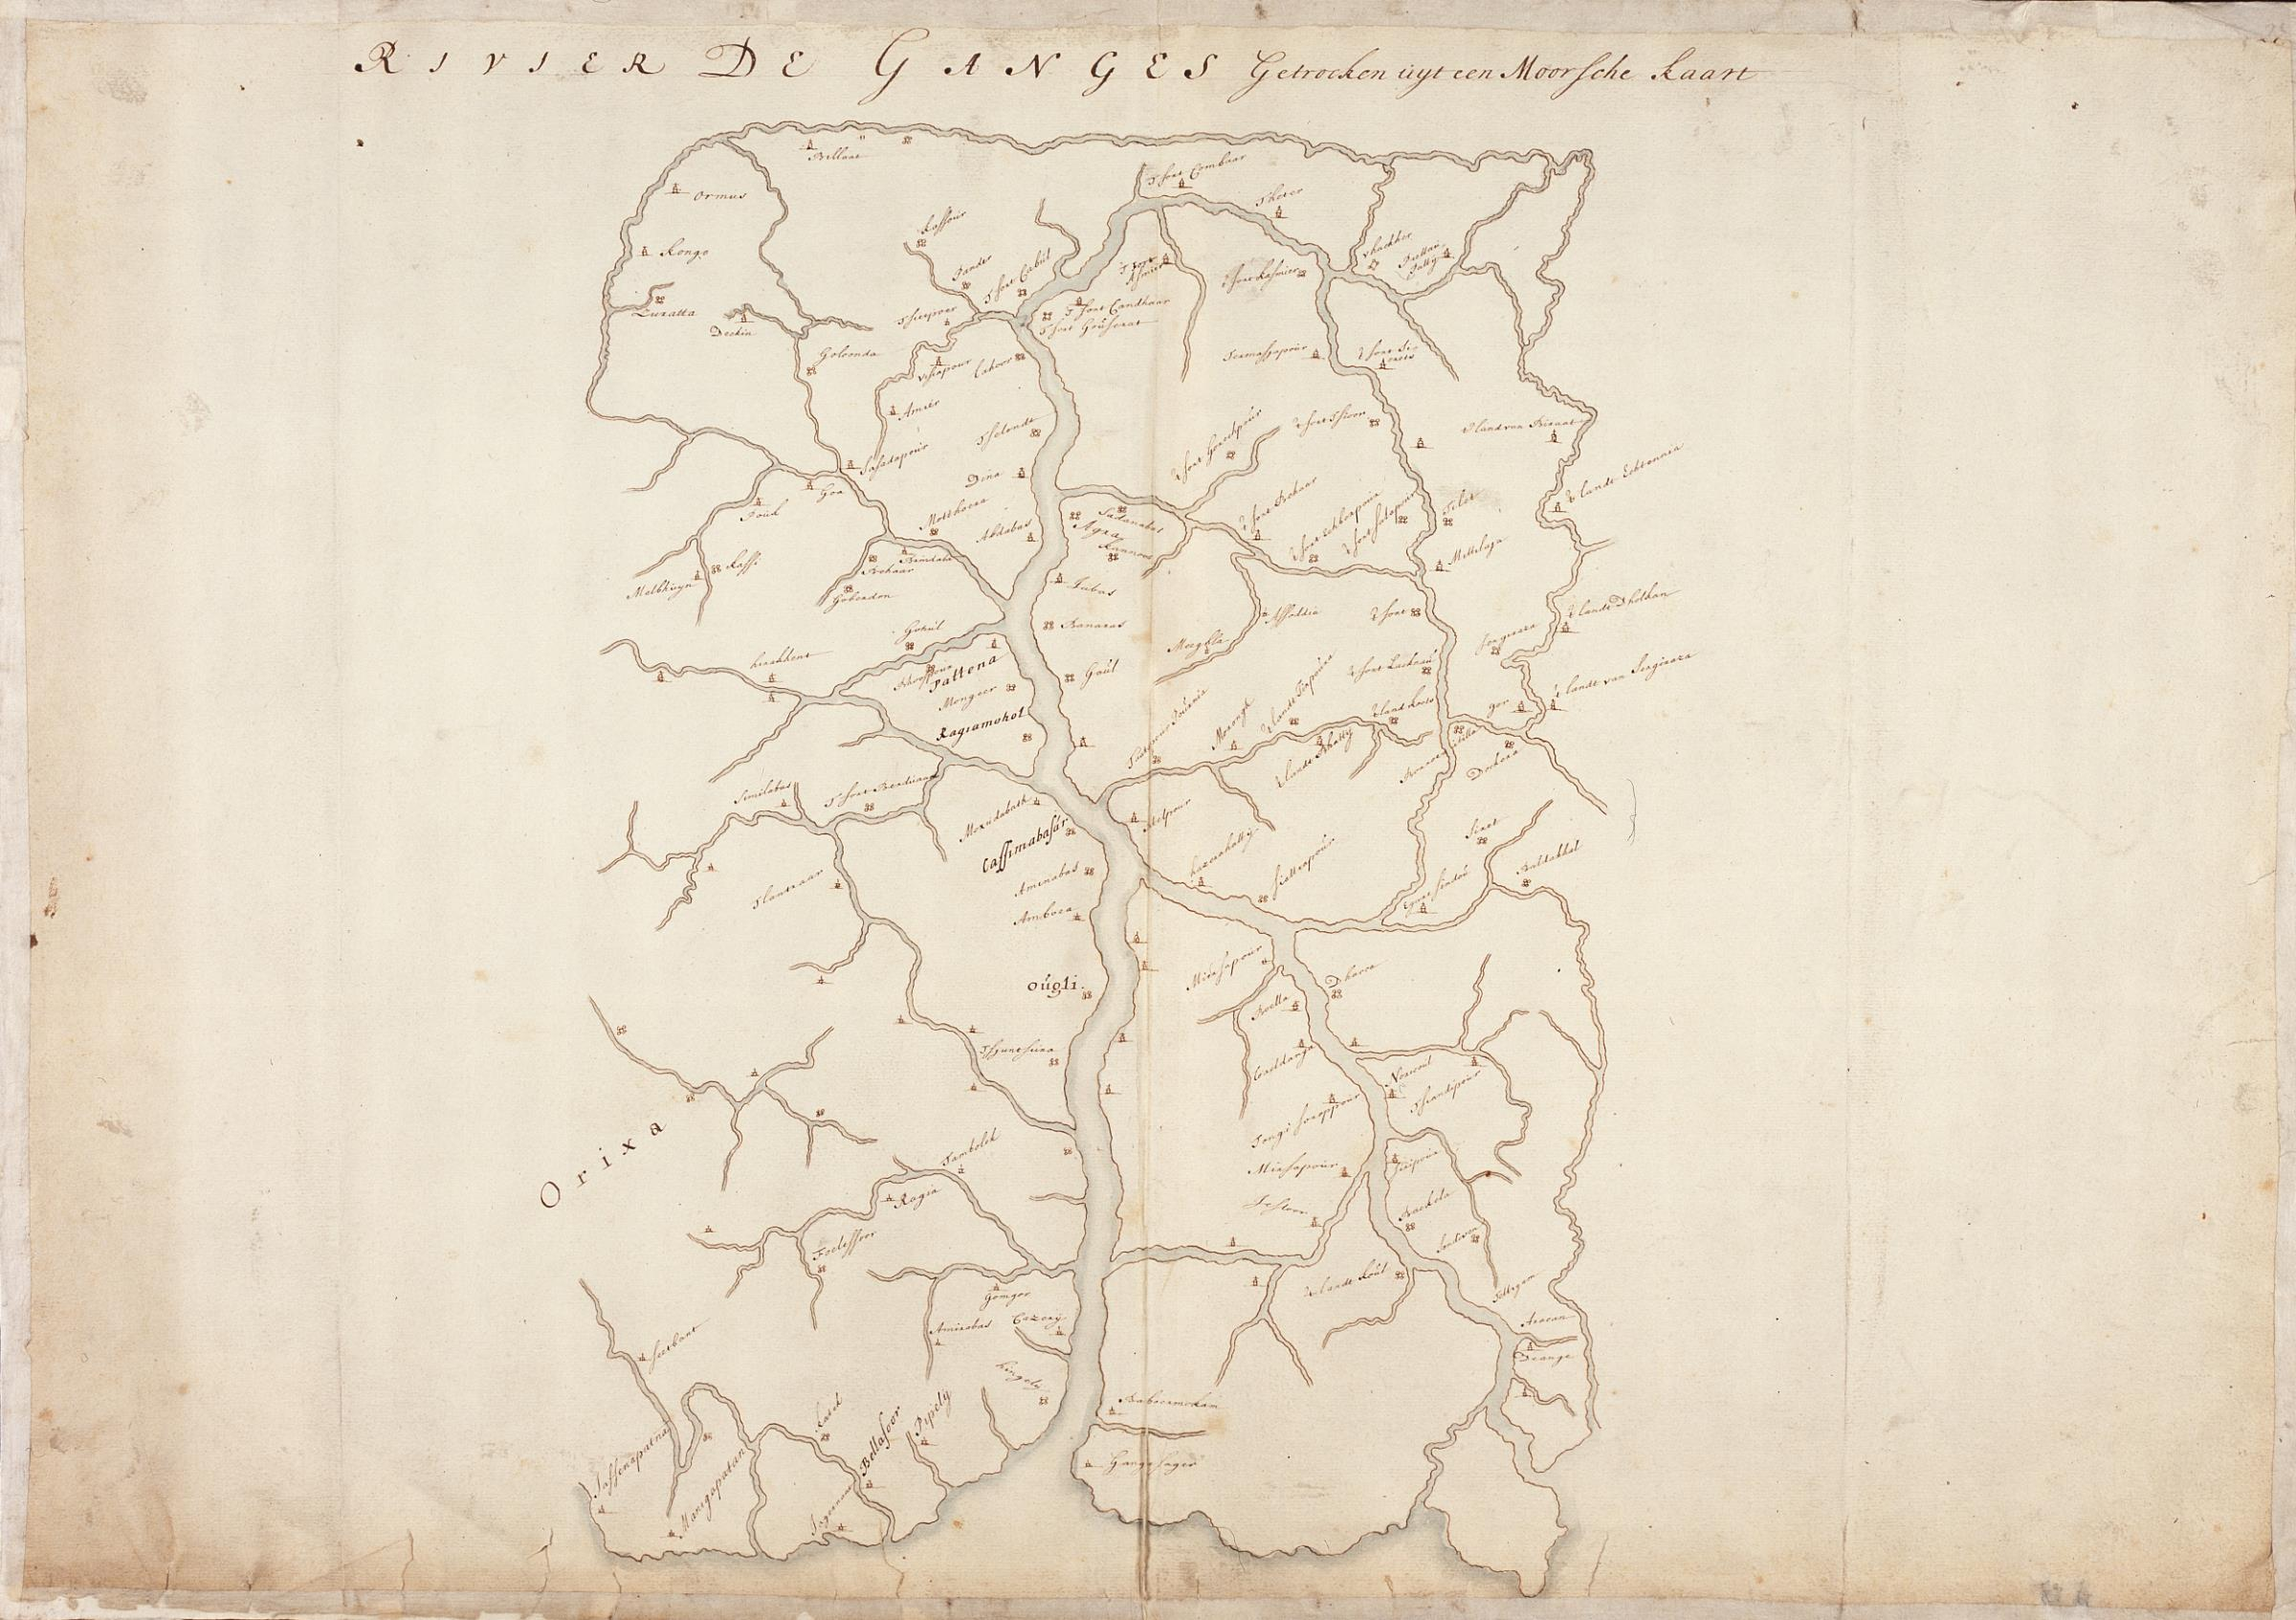 File:AMH-5160-NA Map of the Ganges river.jpg - Wikimedia Commons